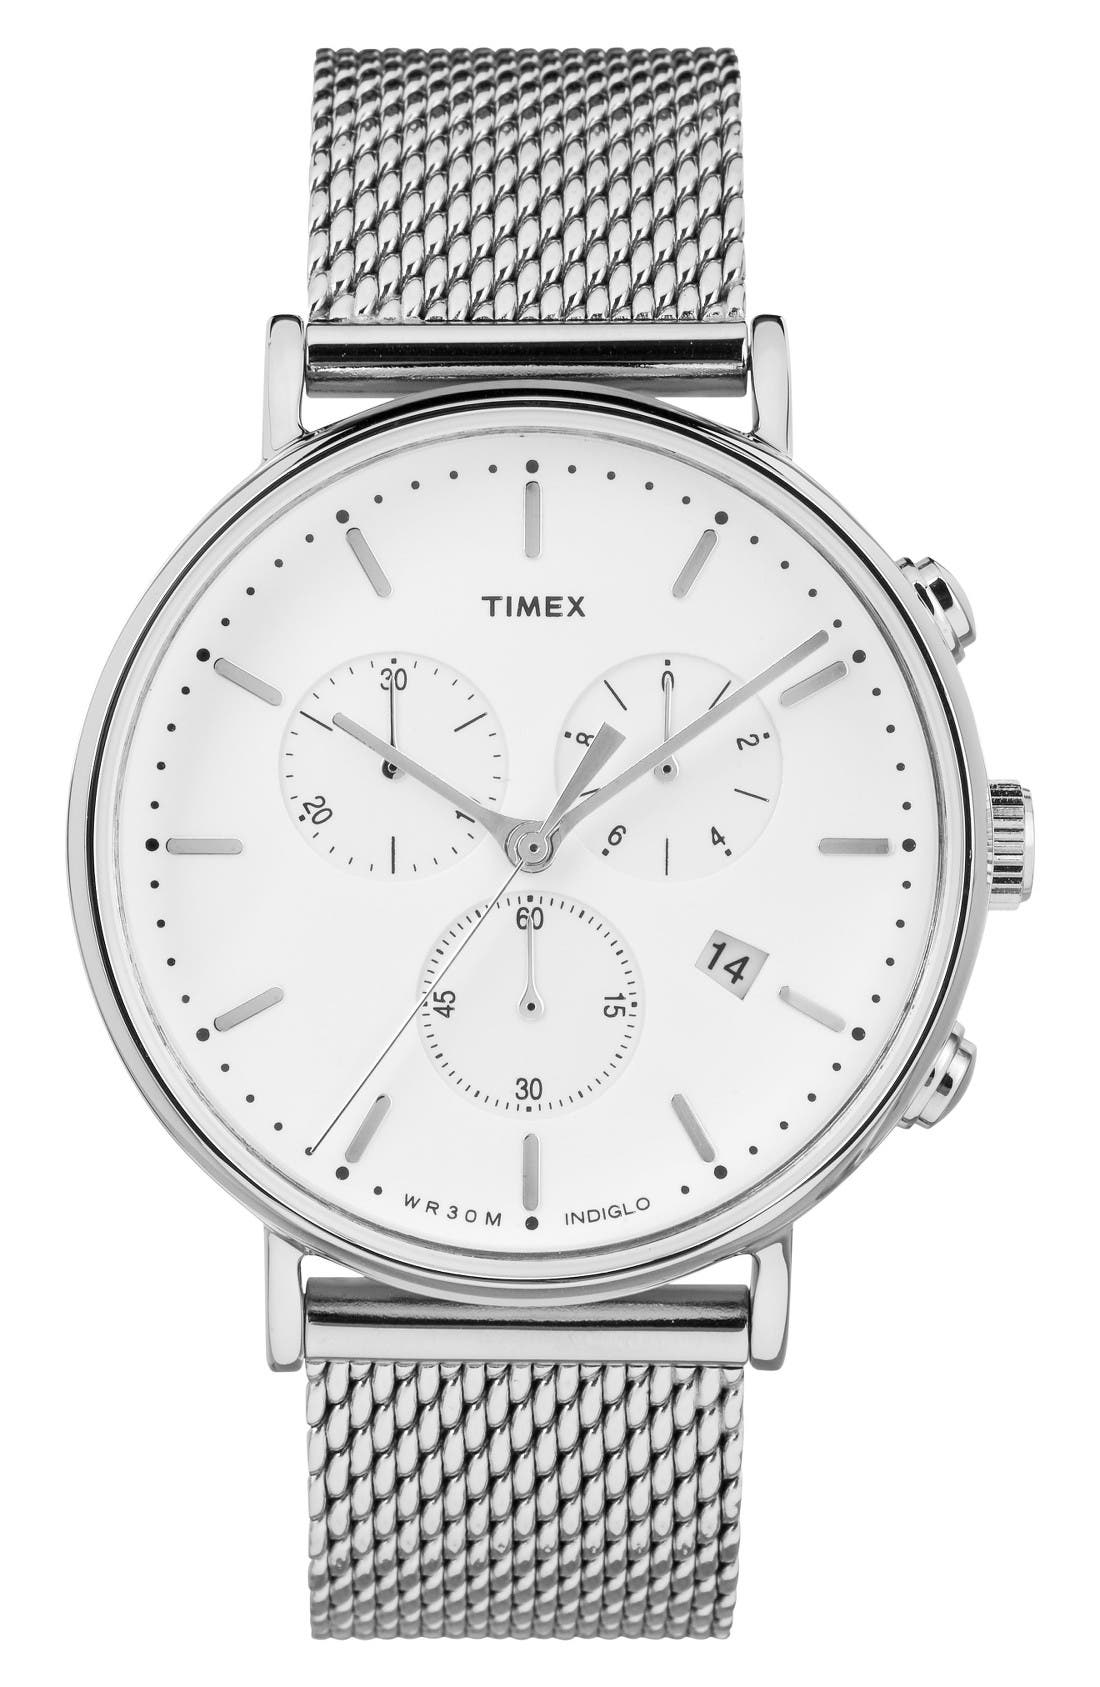 Fairfield Chronograph Mesh Strap Watch, 41mm,                             Main thumbnail 1, color,                             Silver/ White/ Silver